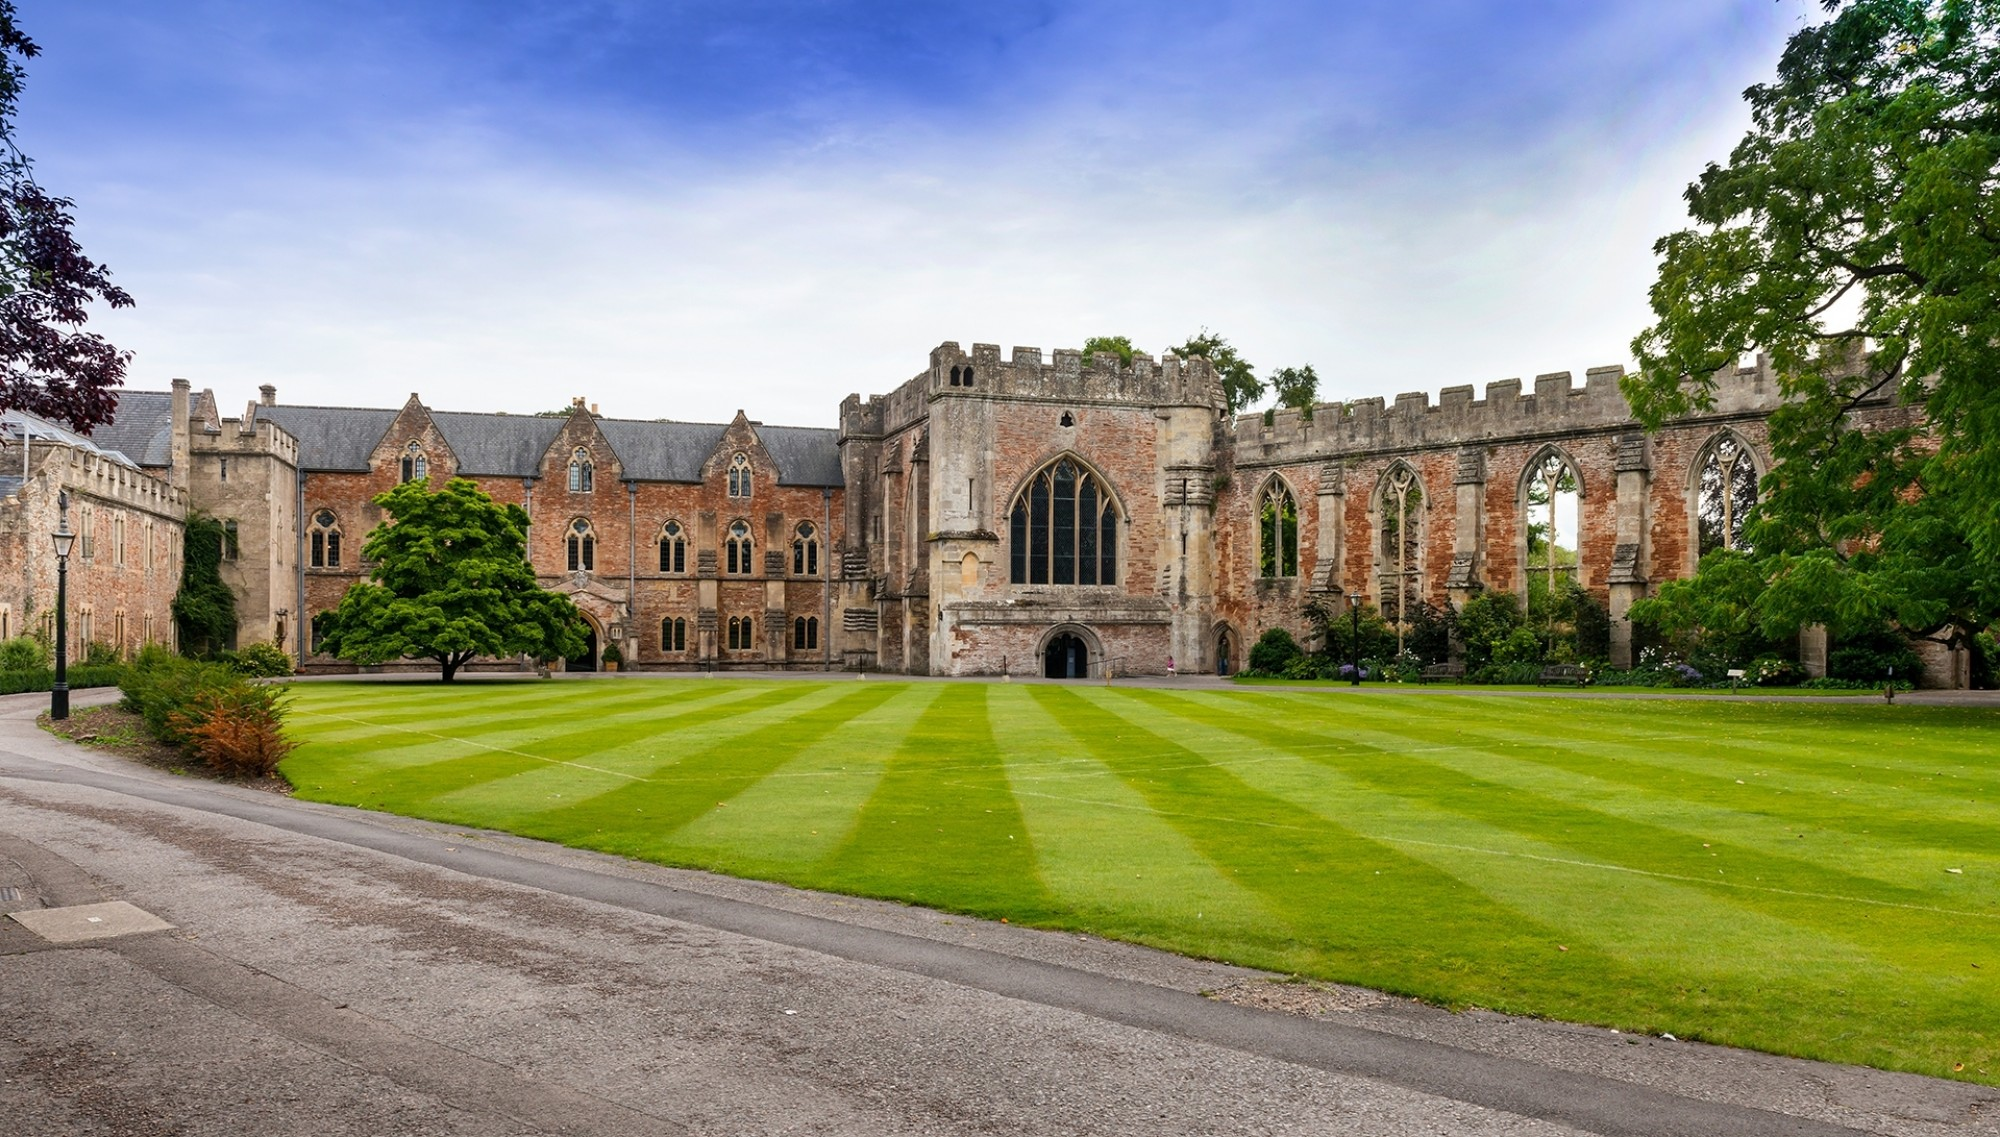 Bishops-Palace-Lawn-Adjacent-to-Wells-Cathedral-Wells-Somerset-England